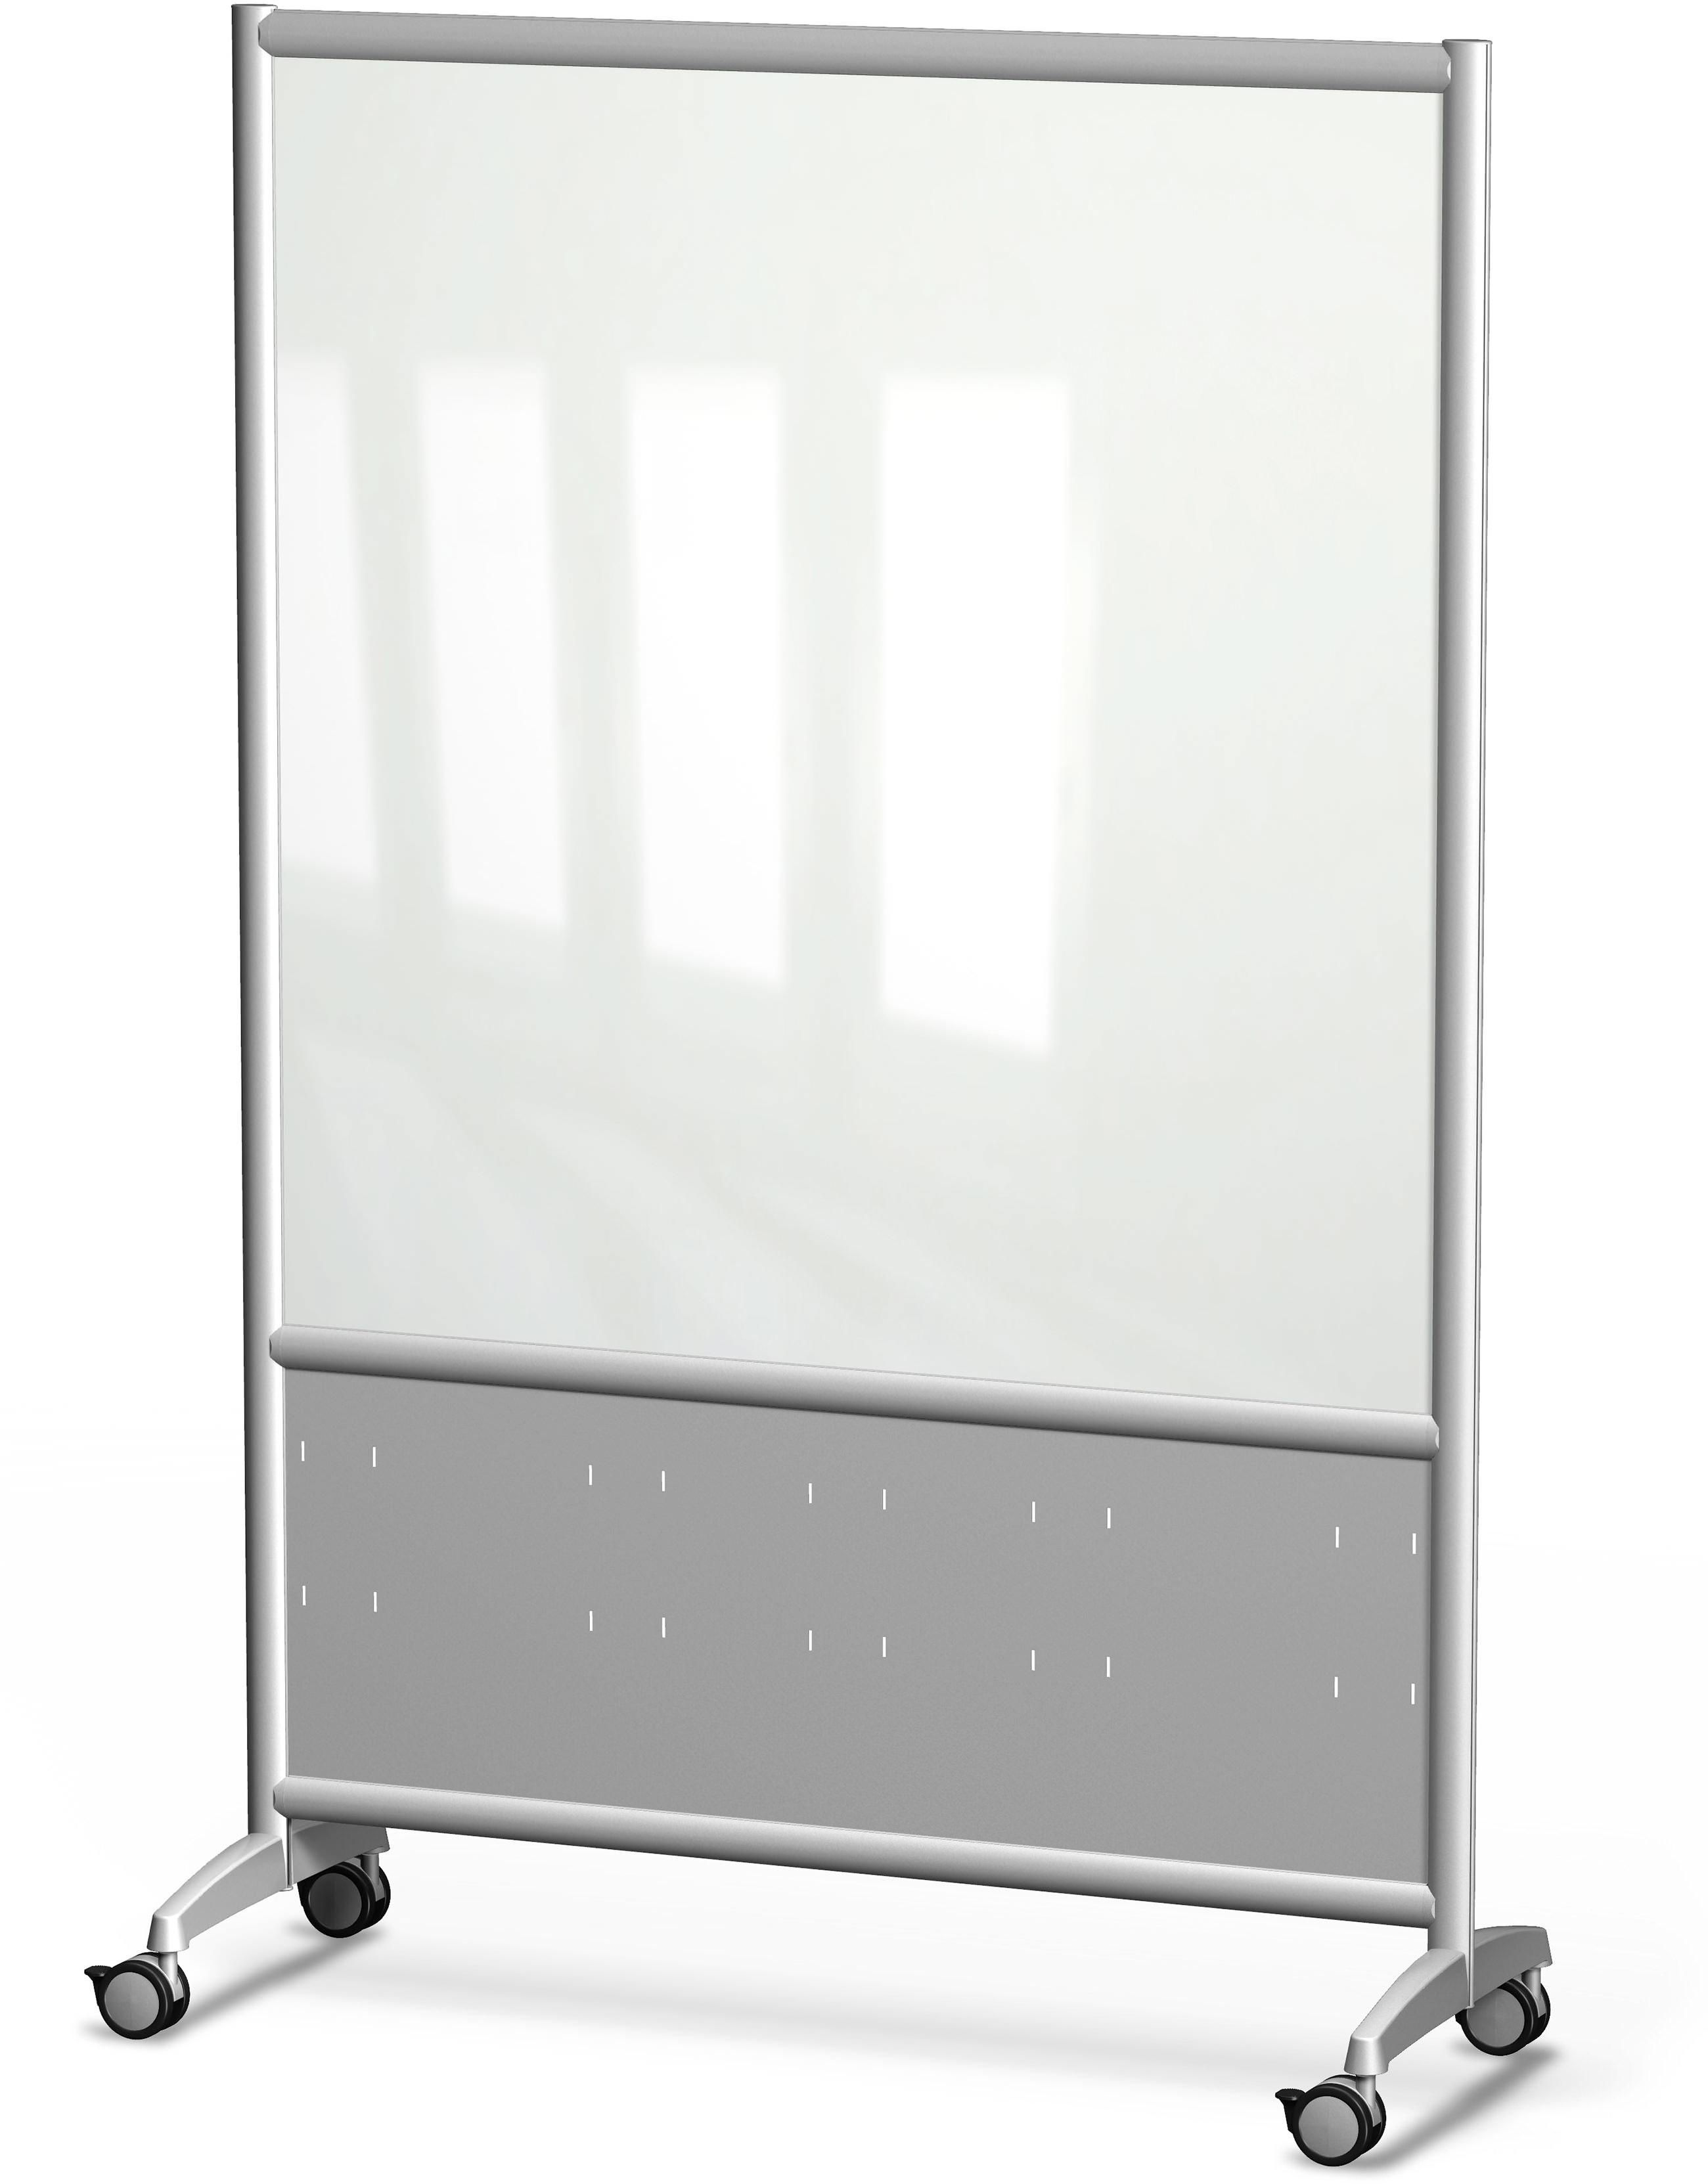 Frontage Mobile Glass Board These Dry Erase Boards Are Available In